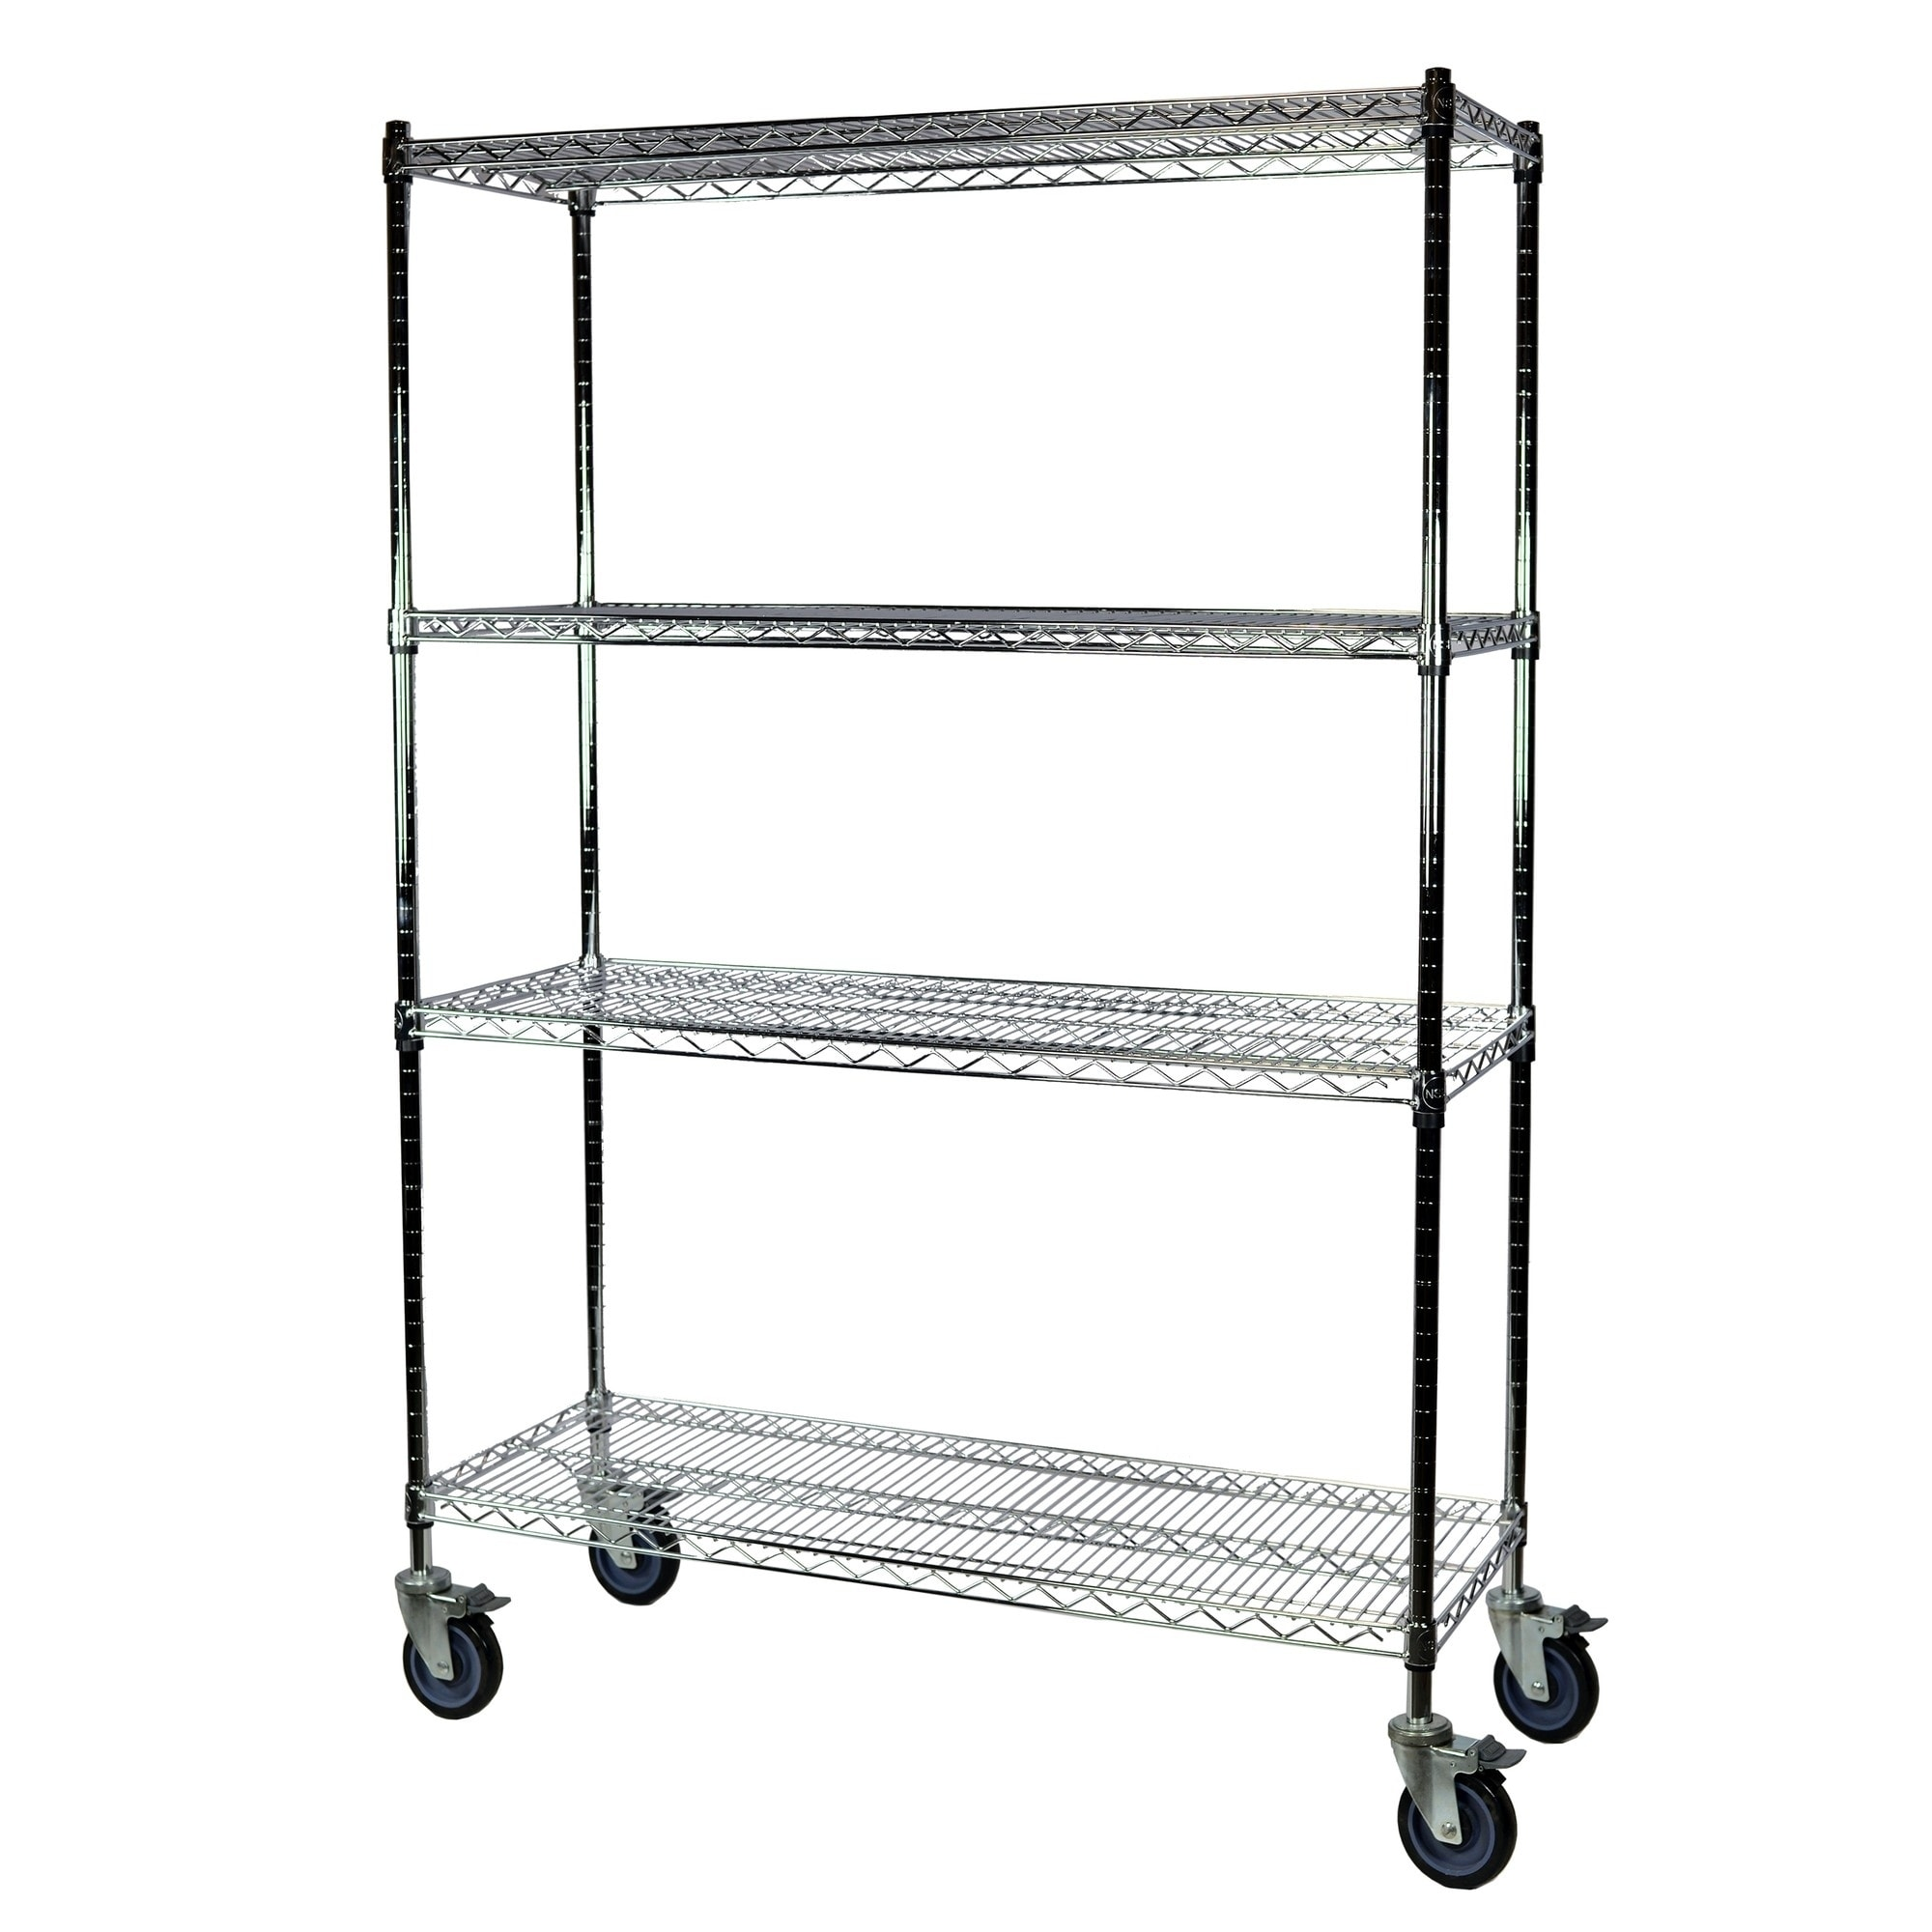 Shelving Pro Chrome Wire Shelving With Wheels 18 X 36 X 74 4 Shelves